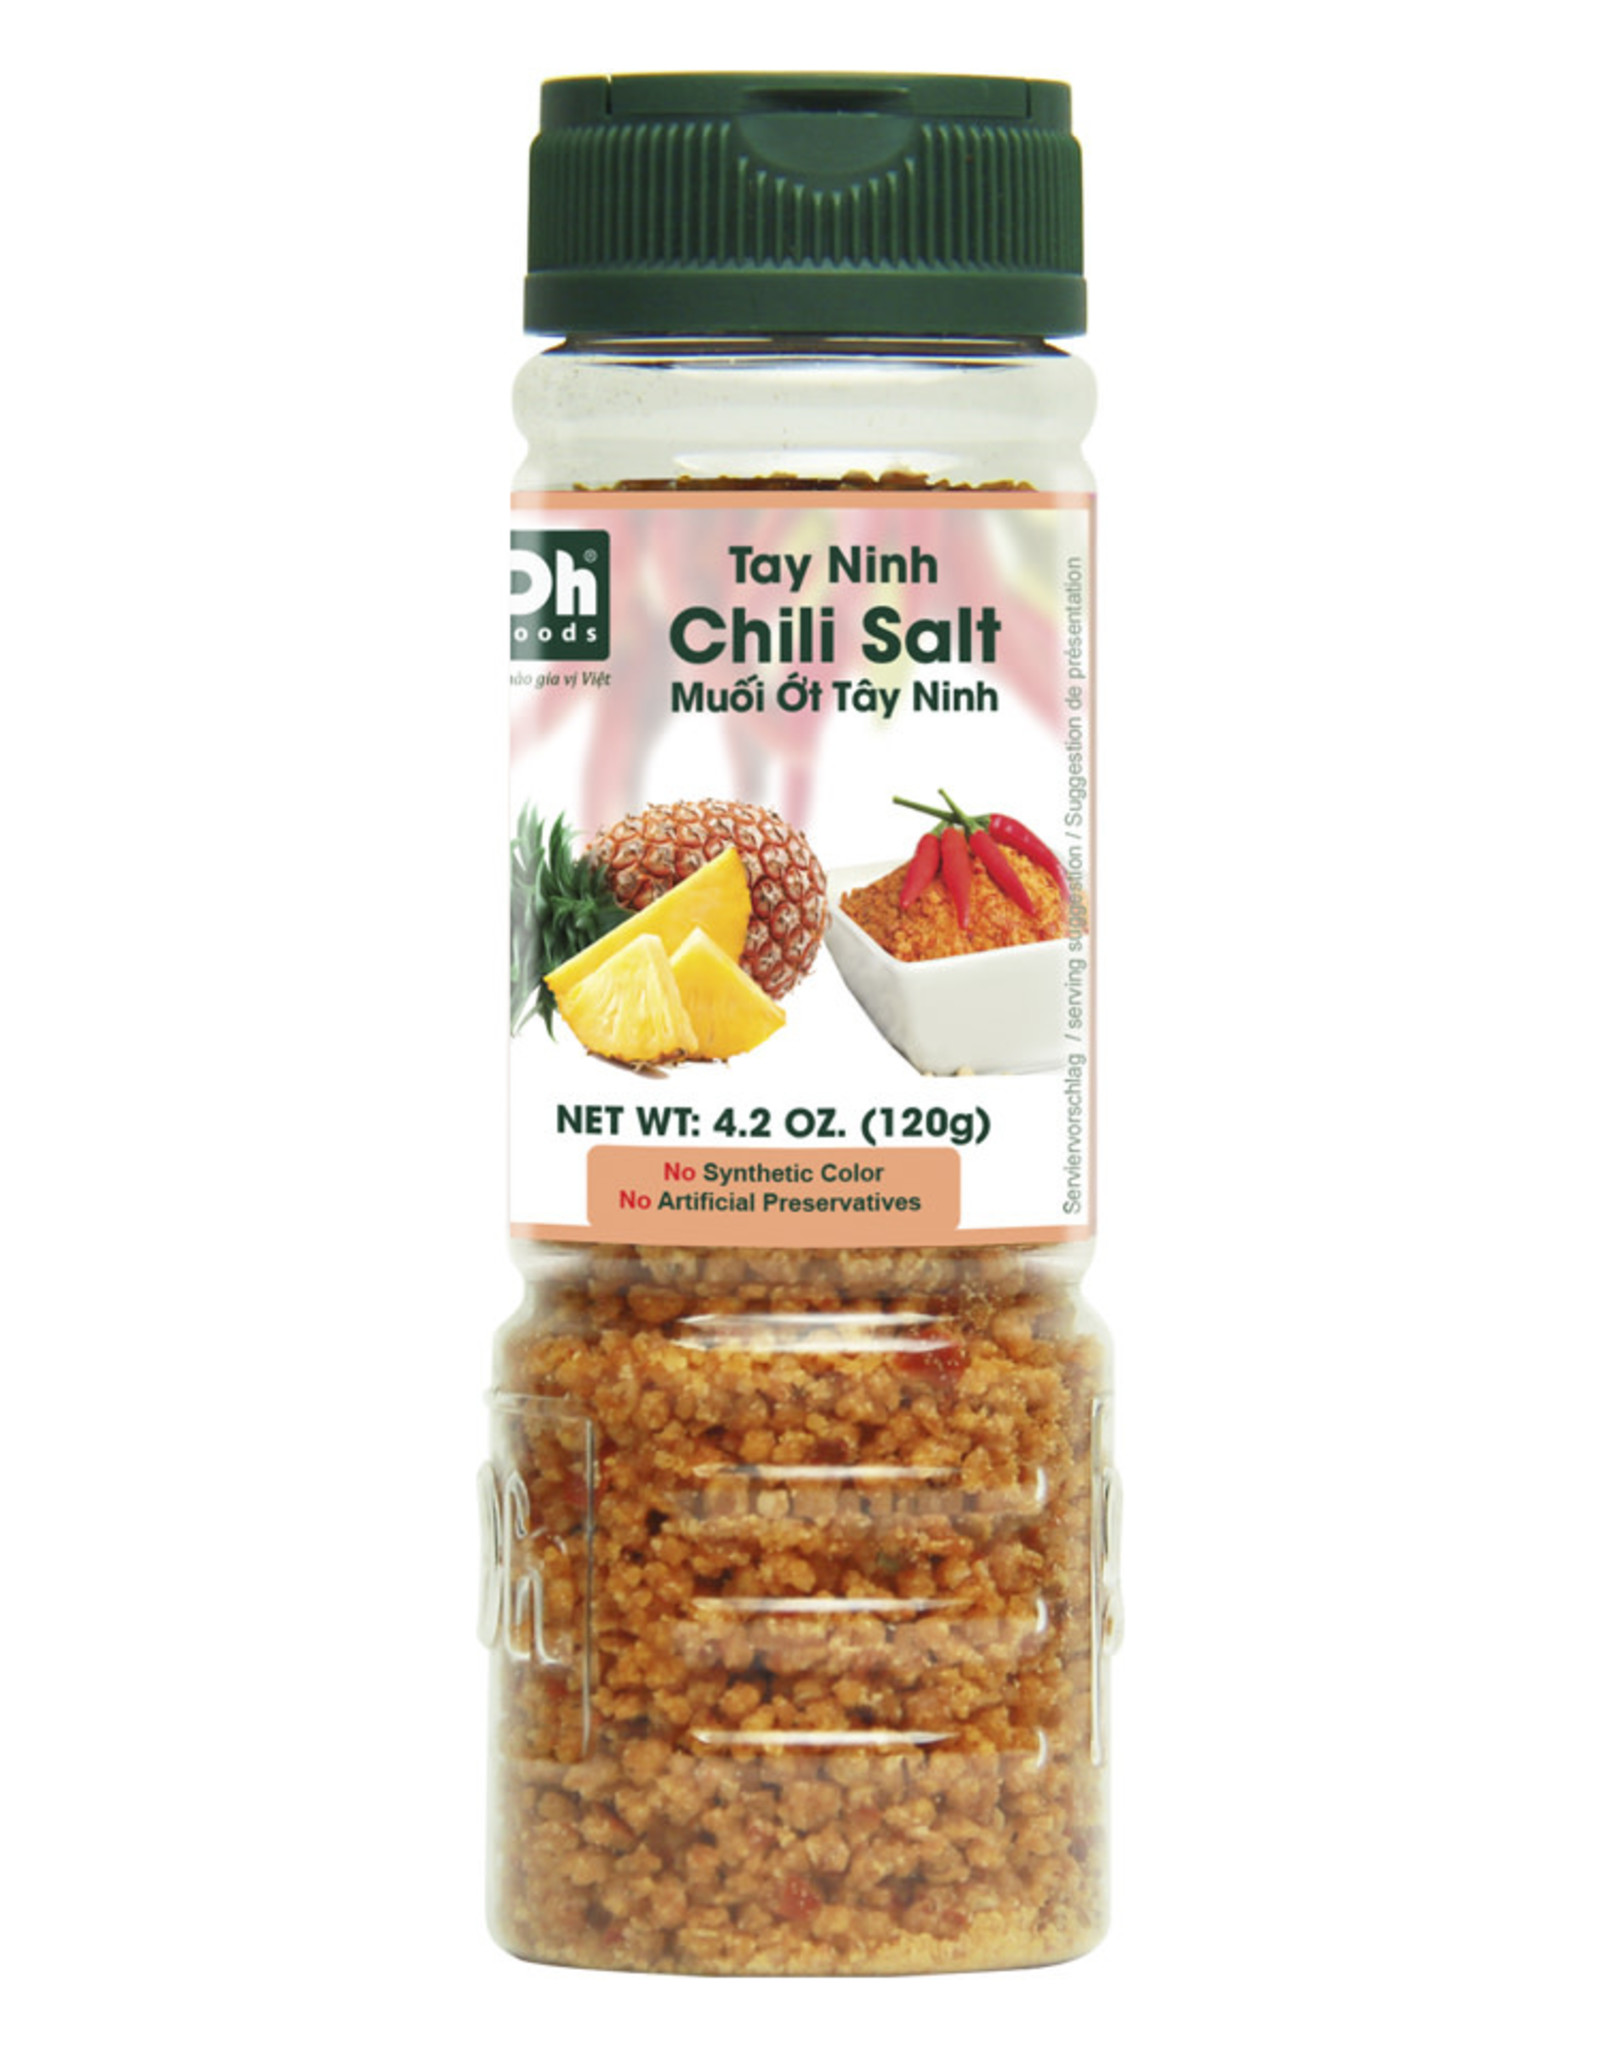 Kruidenmix Zout-Chili Voor Mango Dhf 120G